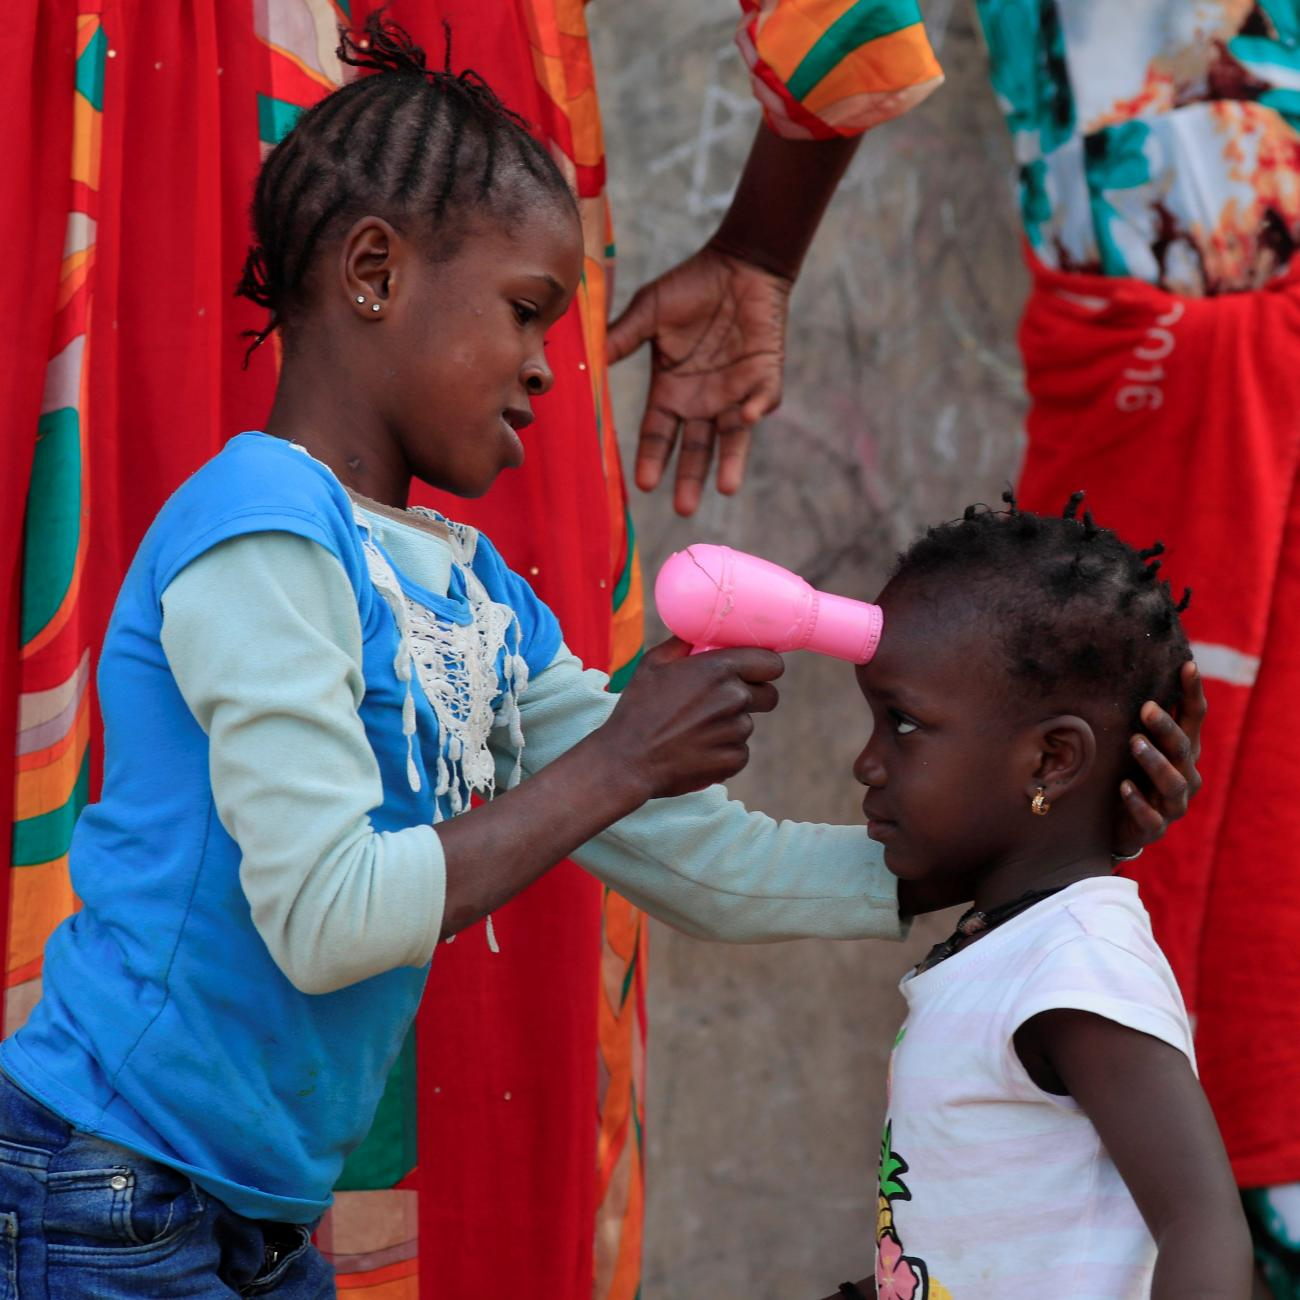 A girl uses a toy hairdryer as an infra-red thermometer on her friend as they play at Hann Bay on the eastern edge of Dakar, Senegal, April 12, 2021